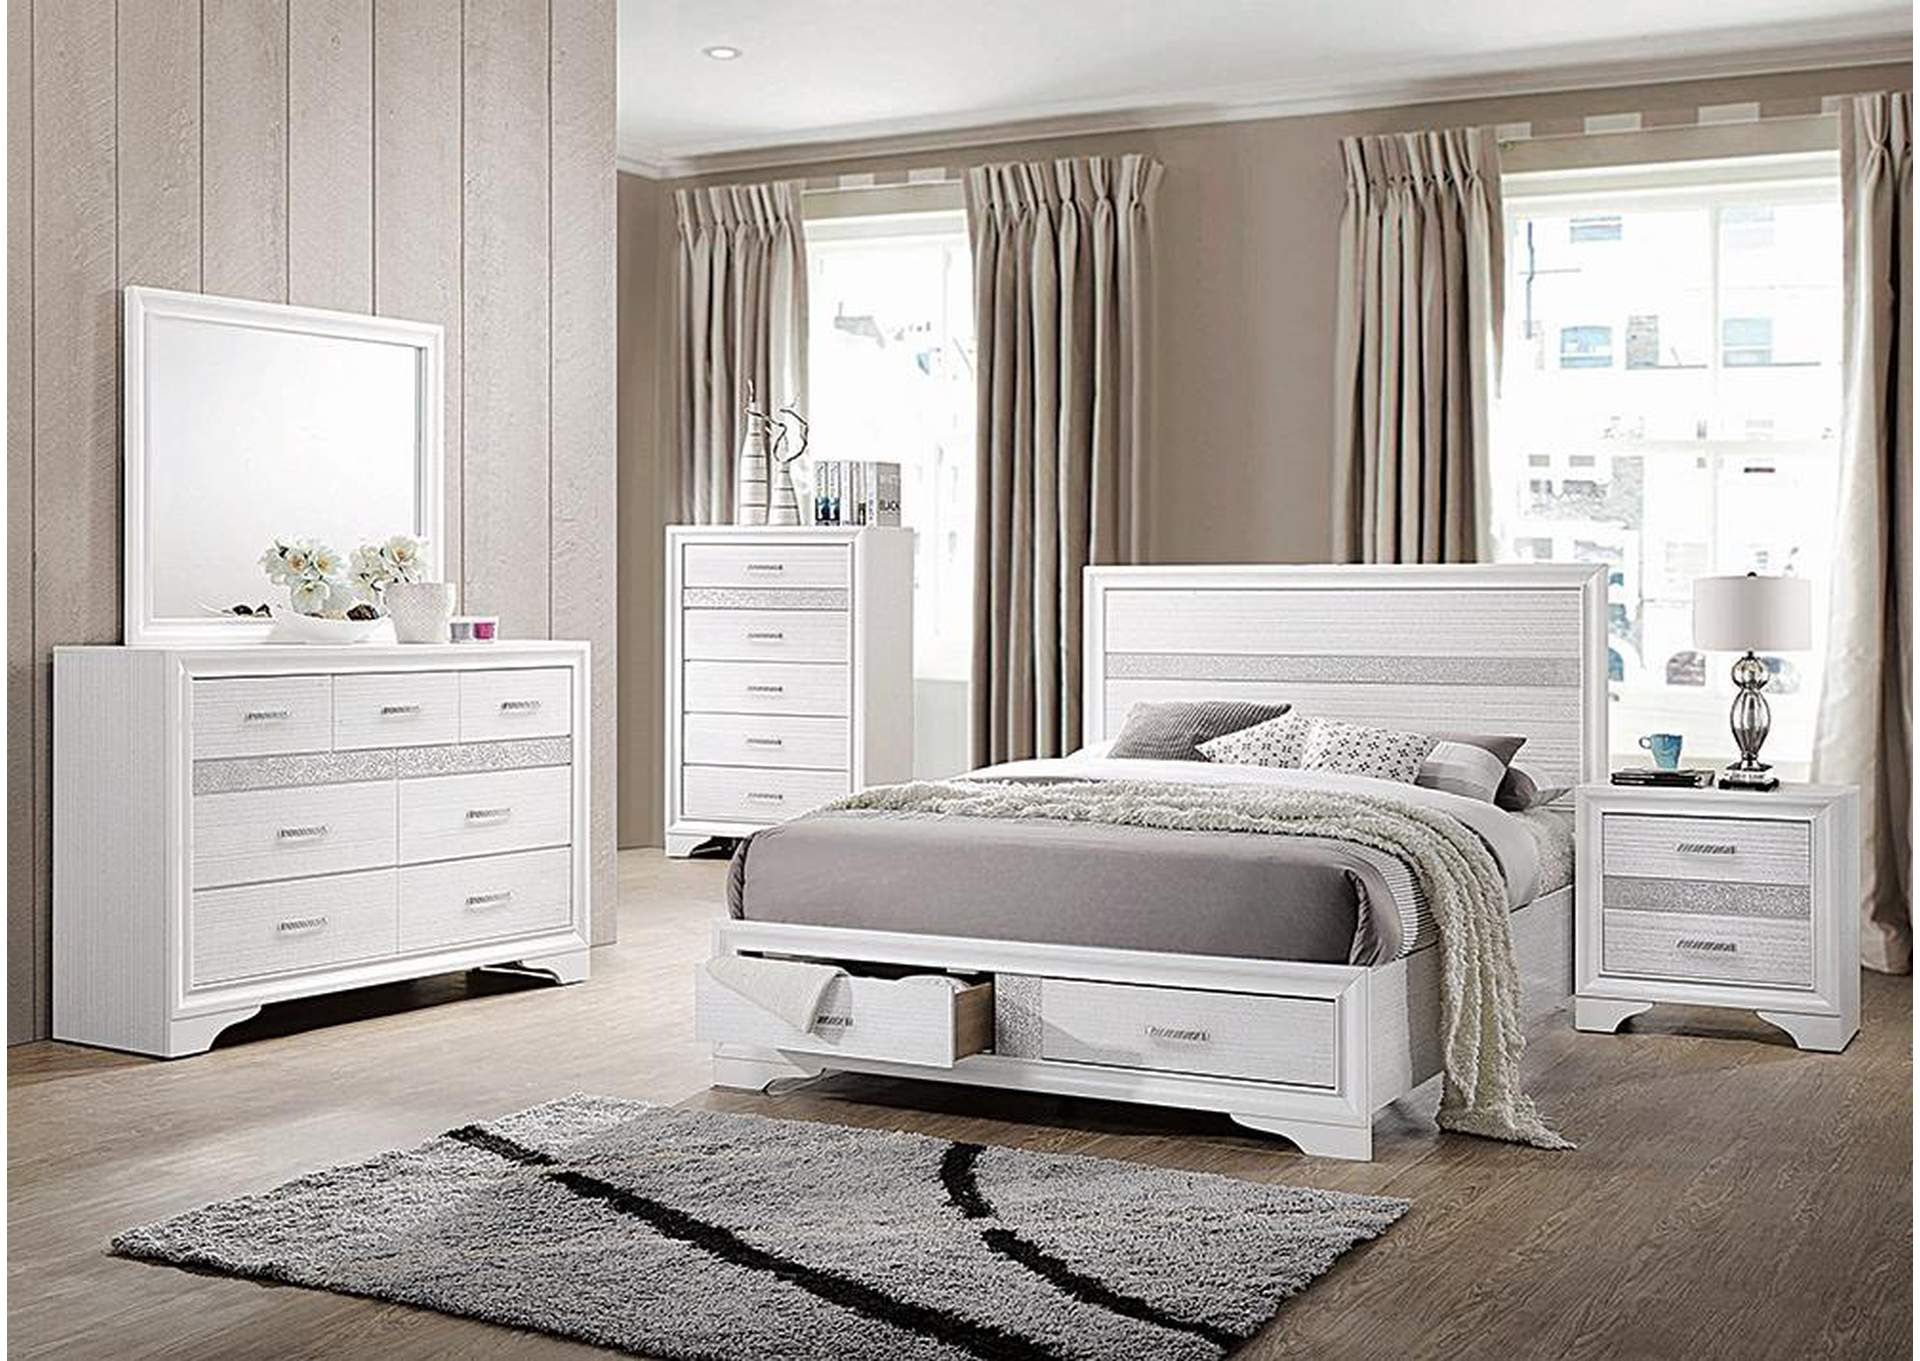 Miranda White California King Storage Bed W/ Dresser & Mirror,Coaster Furniture